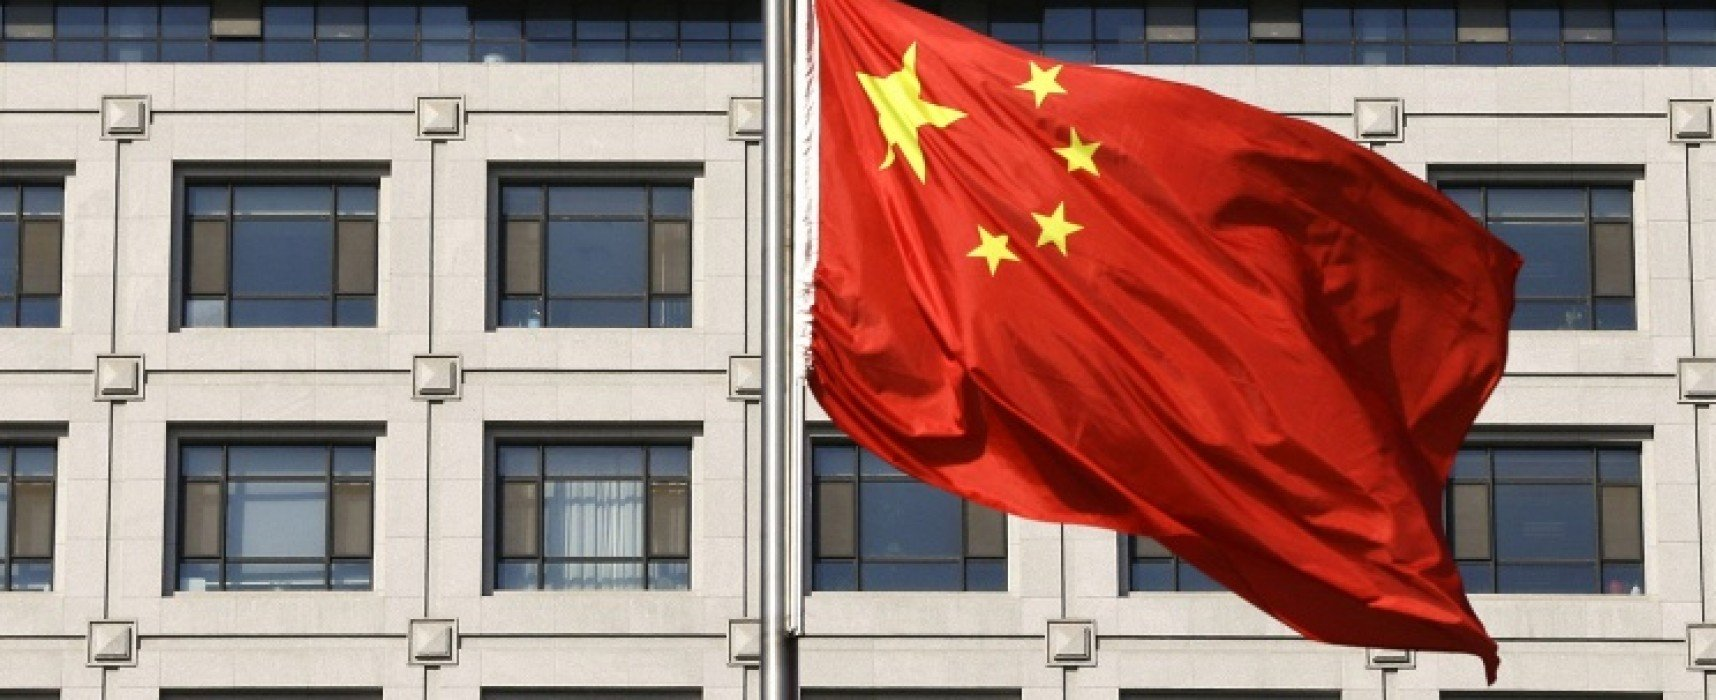 China did not Declare its Support of Russian Annexation of Crimea